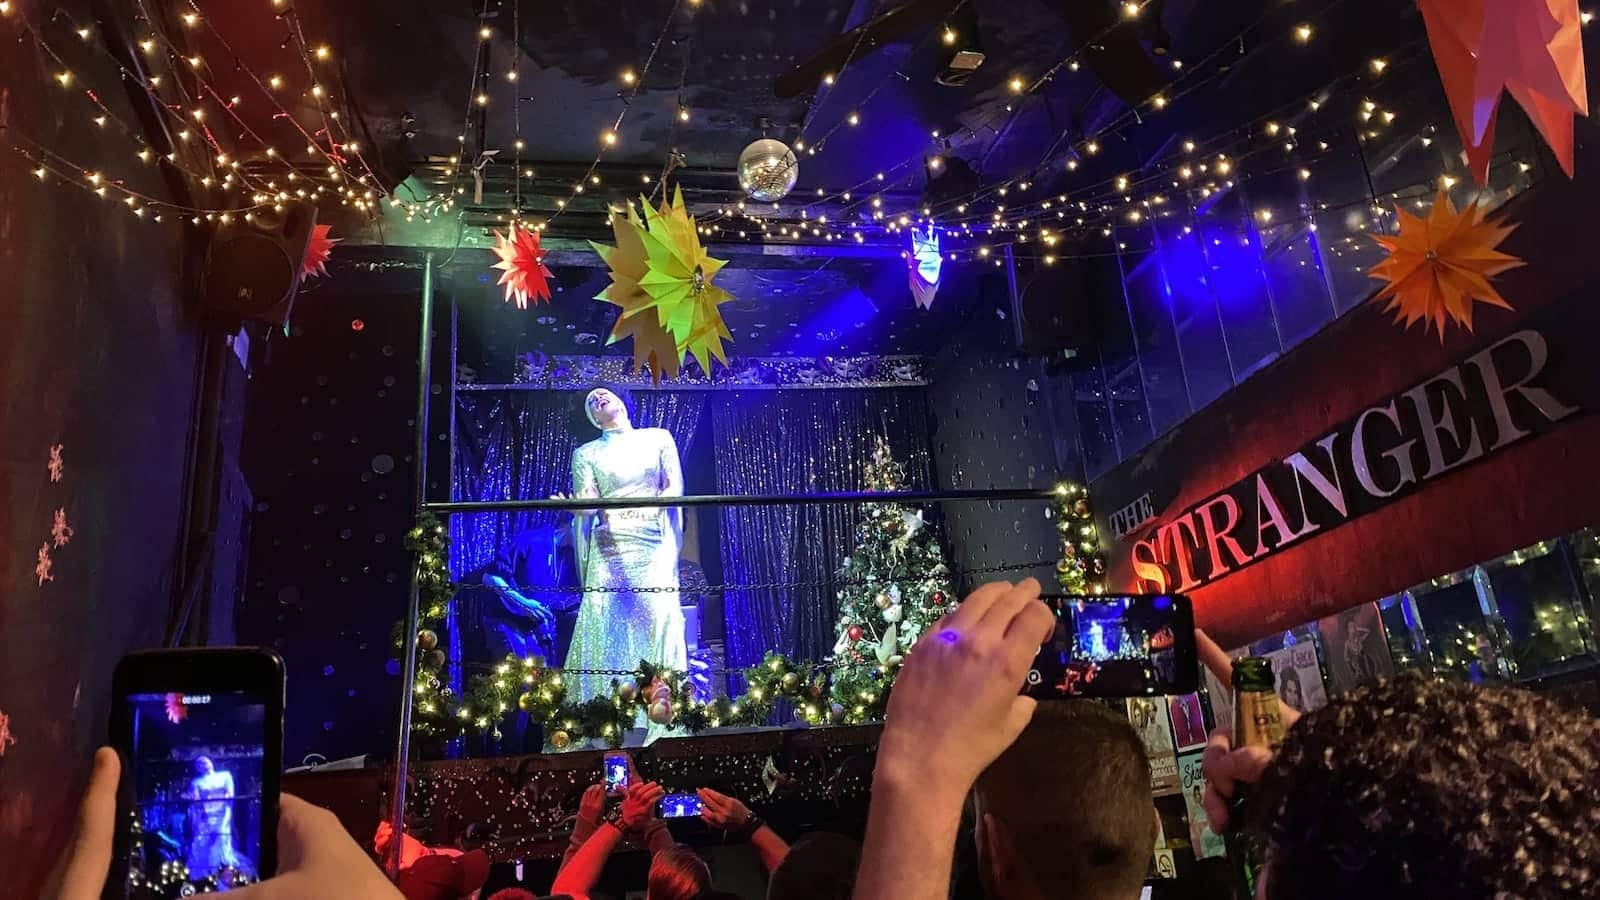 Stranger gay bar in Bangkok has some of the best drag shows